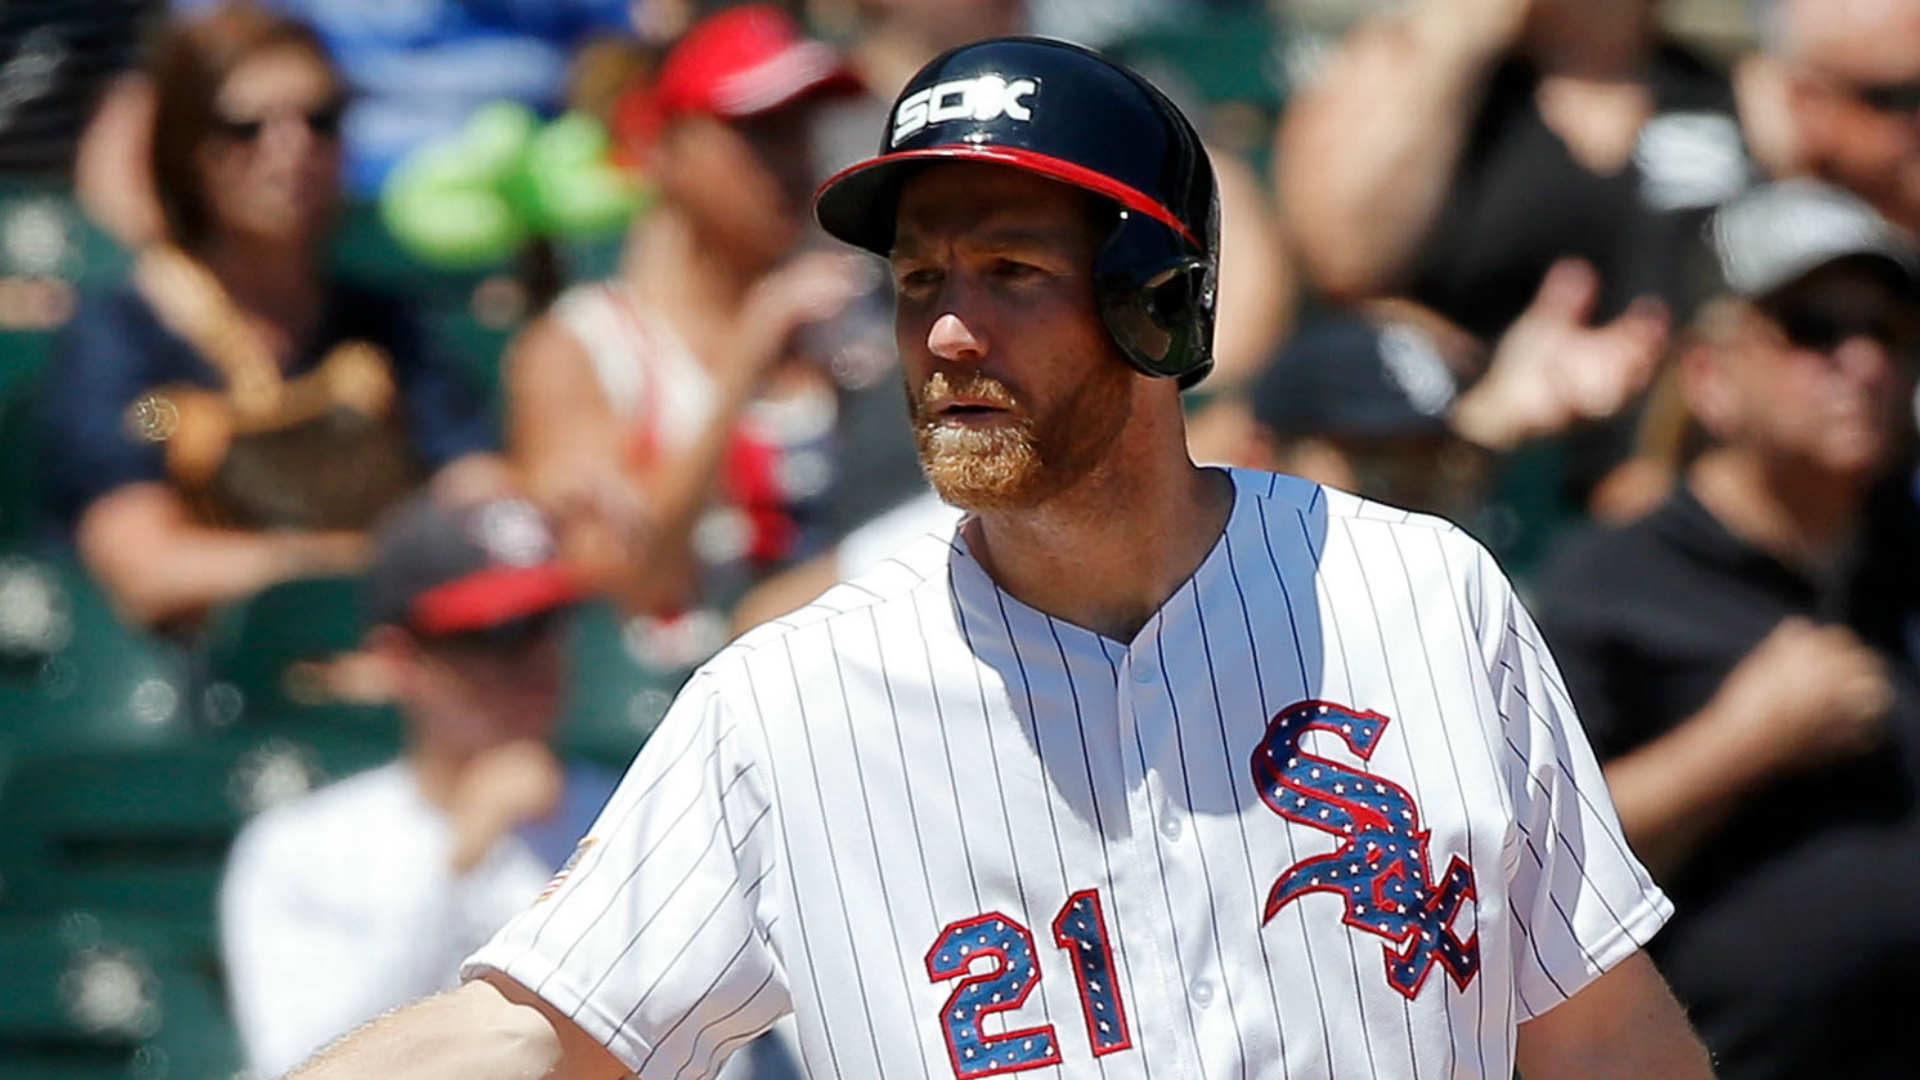 Heyman | Yankees nearing deal to acquire Todd Frazier from White Sox